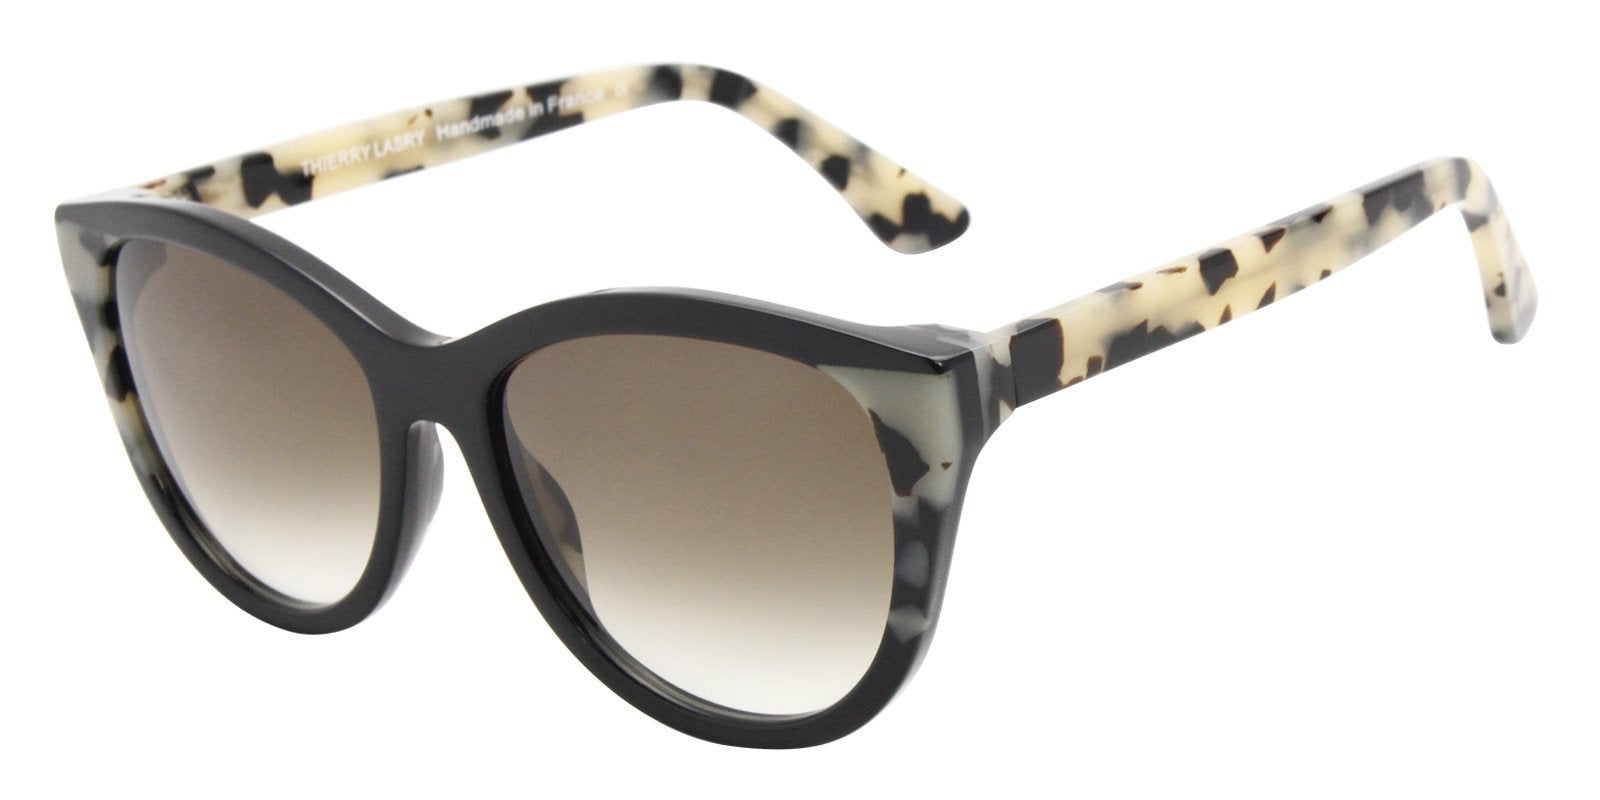 Thierry Lasry - Flattery Black Oval Women Sunglasses - 55mm-Sunglasses-Designer Eyes